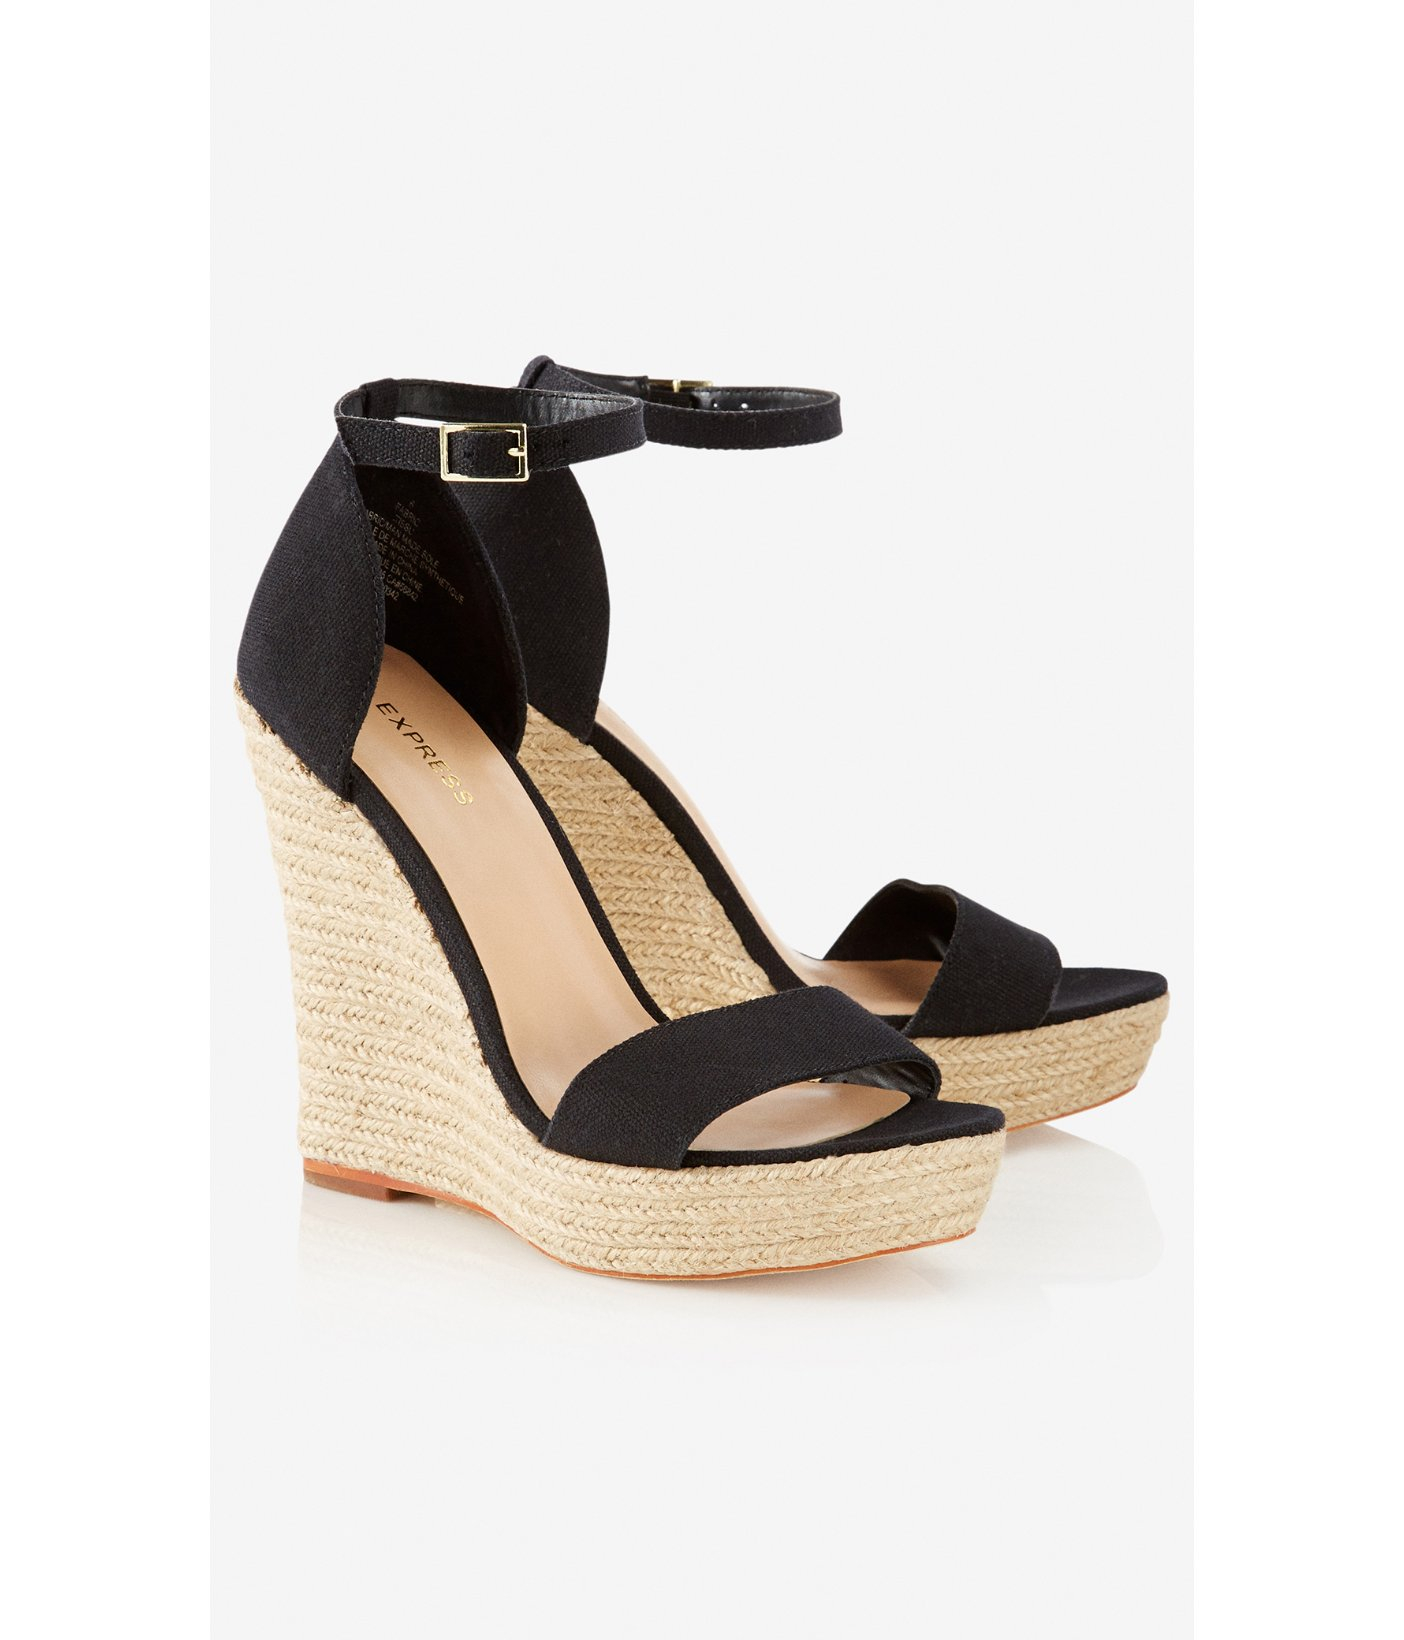 58306f942ee5 Lyst - Express Espadrille Wedge Sandal in Black